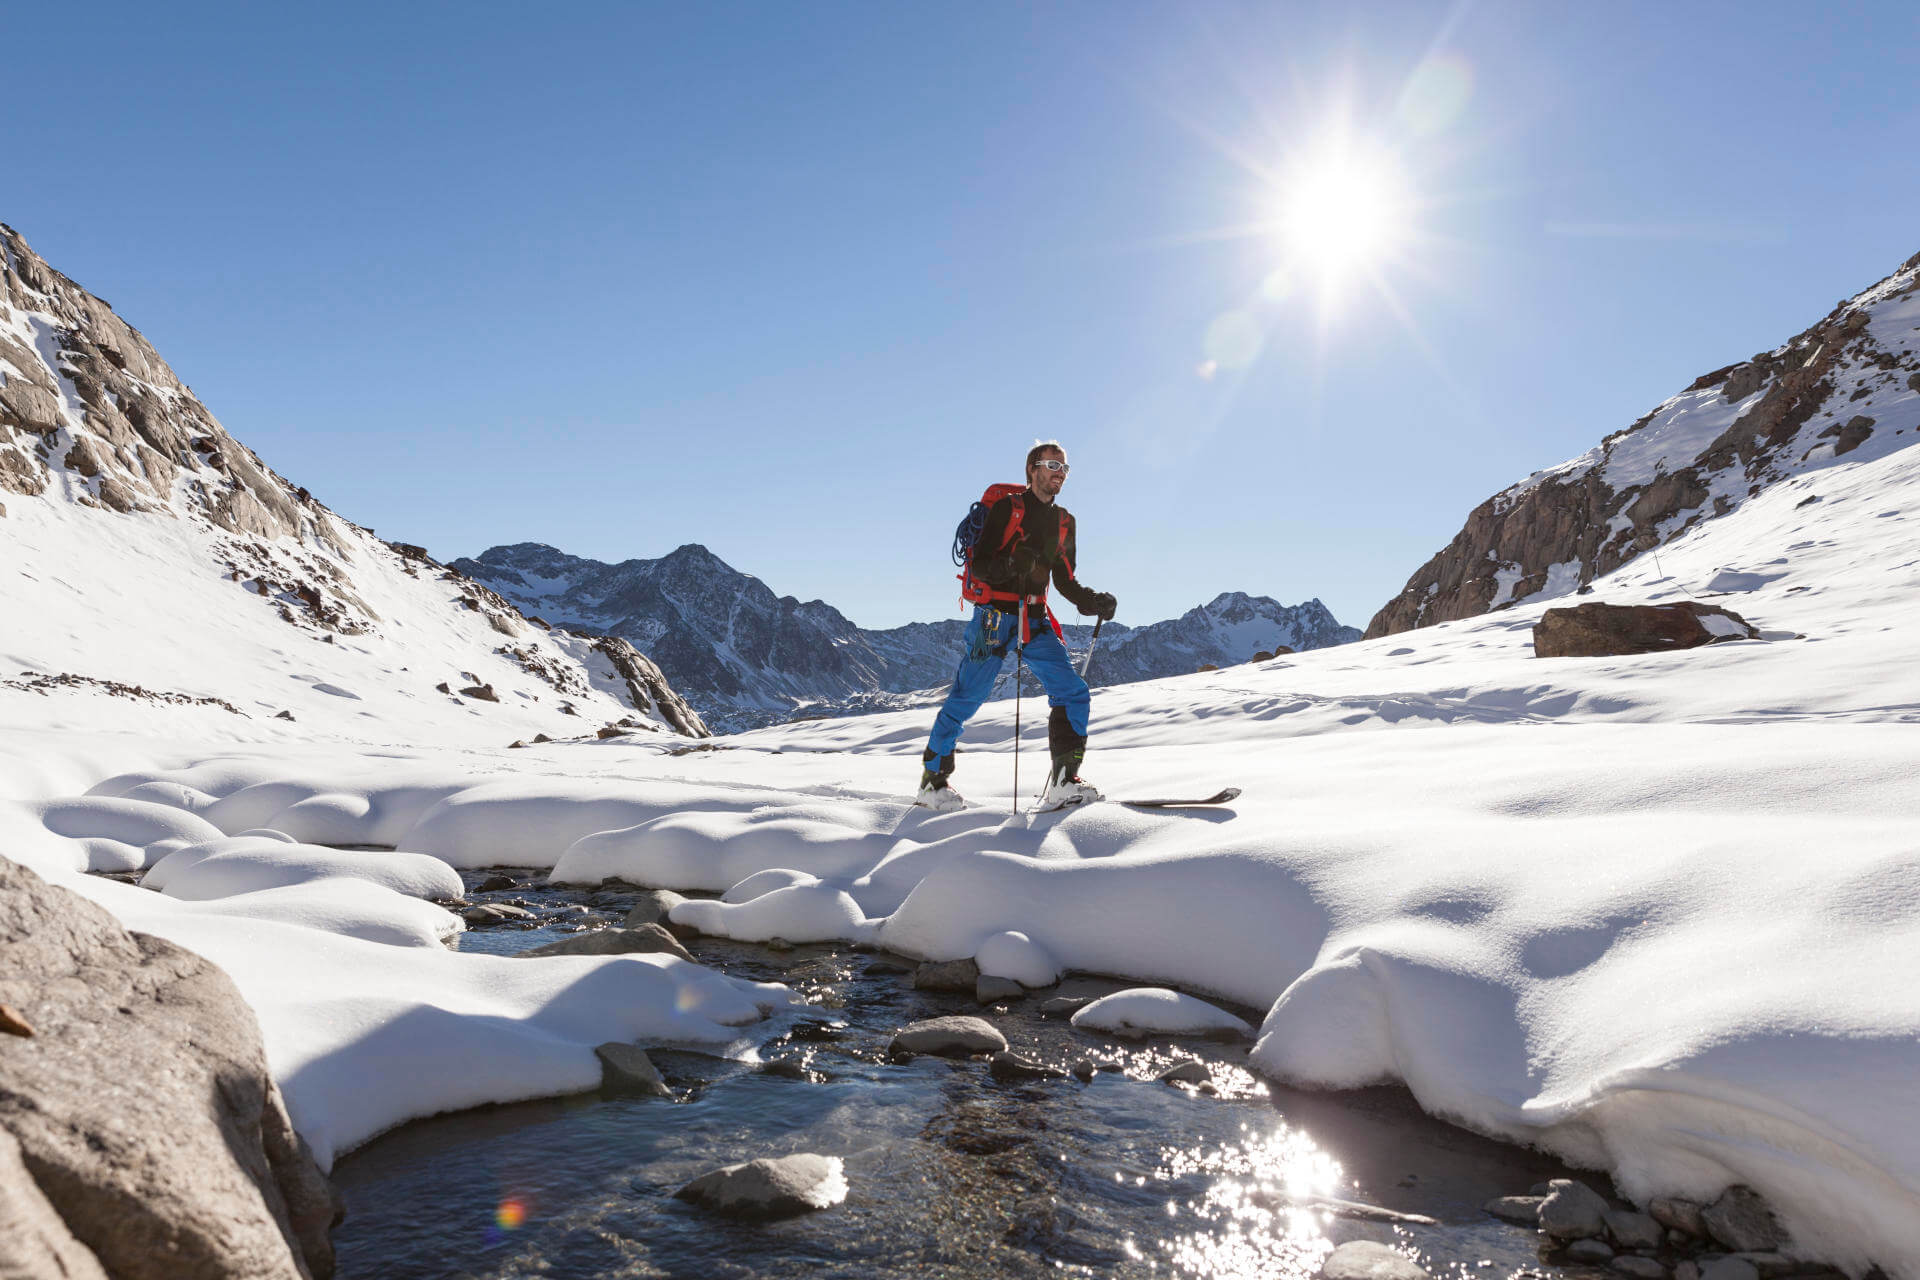 Ski touring for beginners - Ski tourer in the sunshine in the mountains.